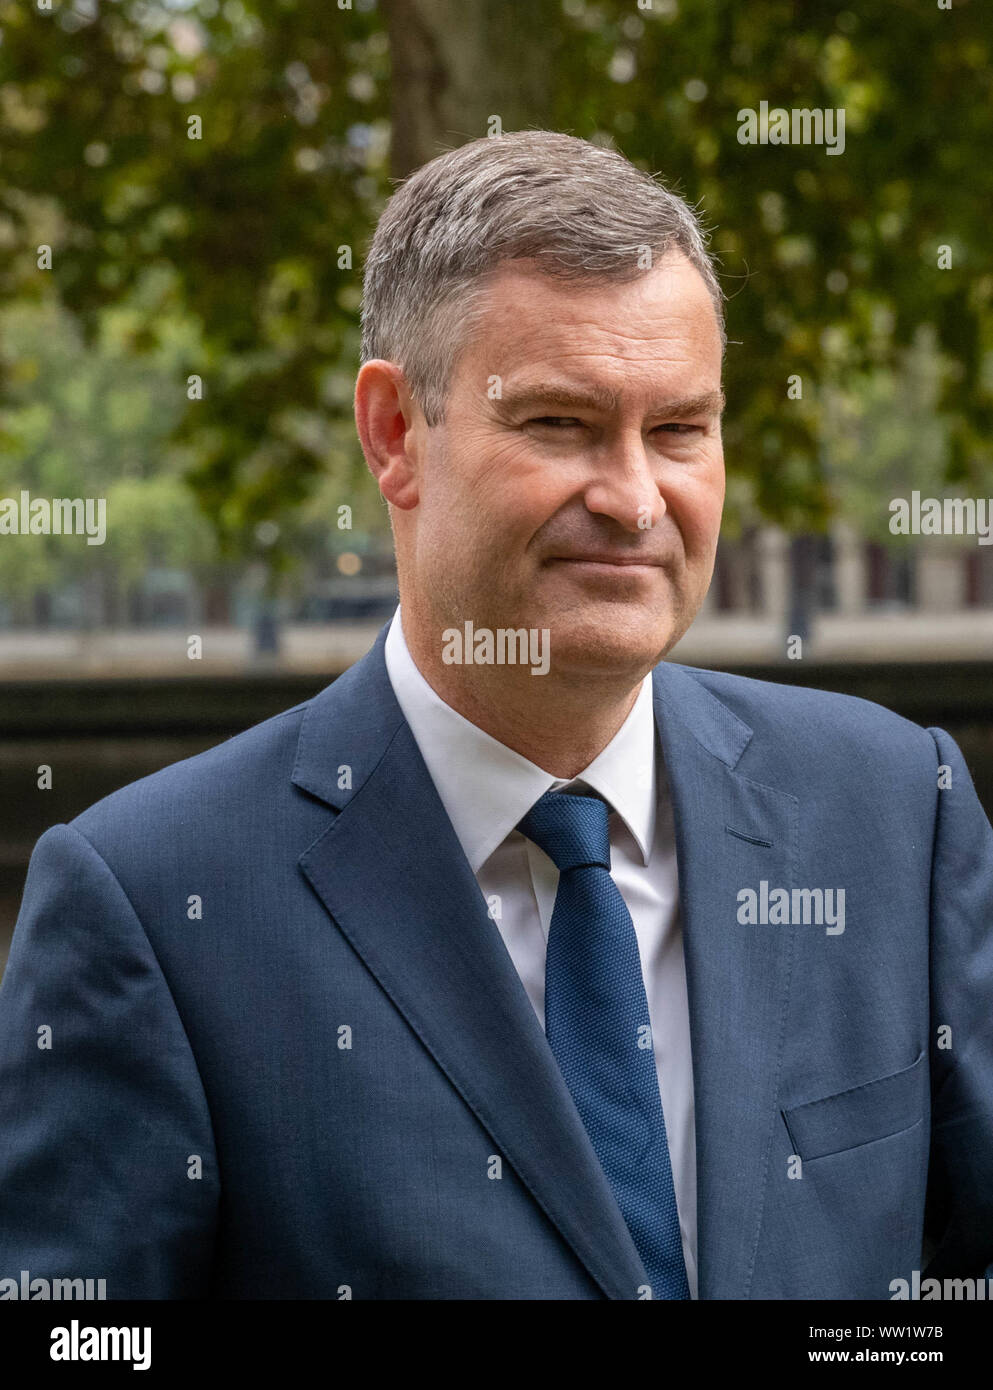 London, Großbritannien. 12 Sep, 2019. David Gauke MP, interviewte in Westminster London UK Credit: Ian Davidson/Alamy leben Nachrichten Stockfoto